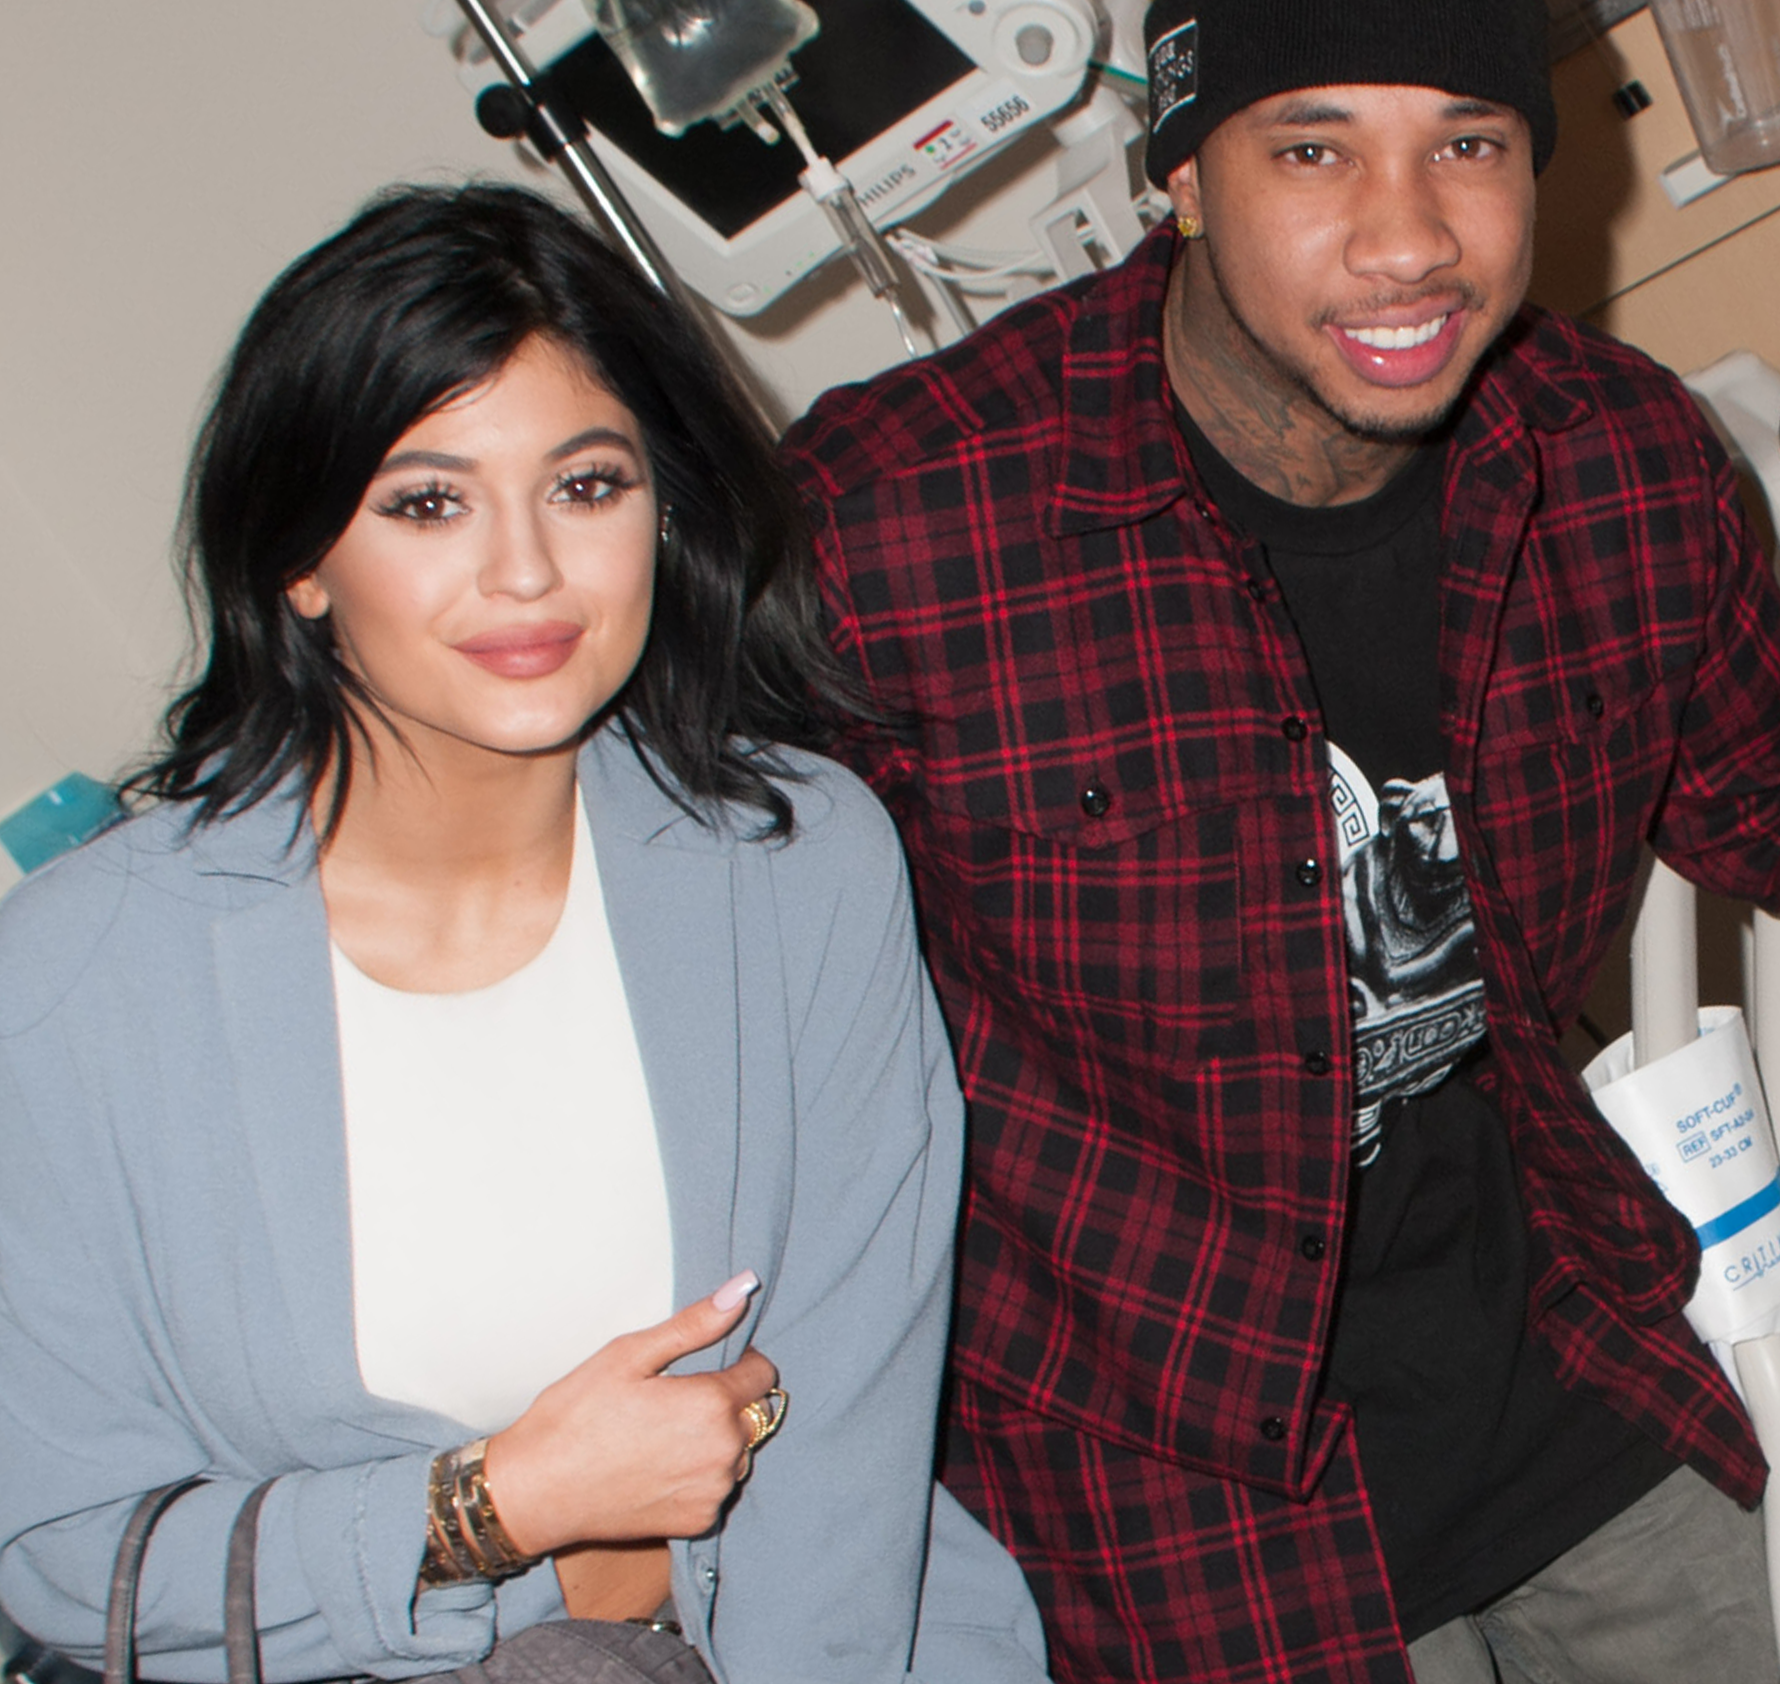 tyga and kylie dating Tv personality kylie jenner is pregnant with her boyfriend travis scott she is dating him since april after splitting up from her on-again, off-again boyfriend tyga.